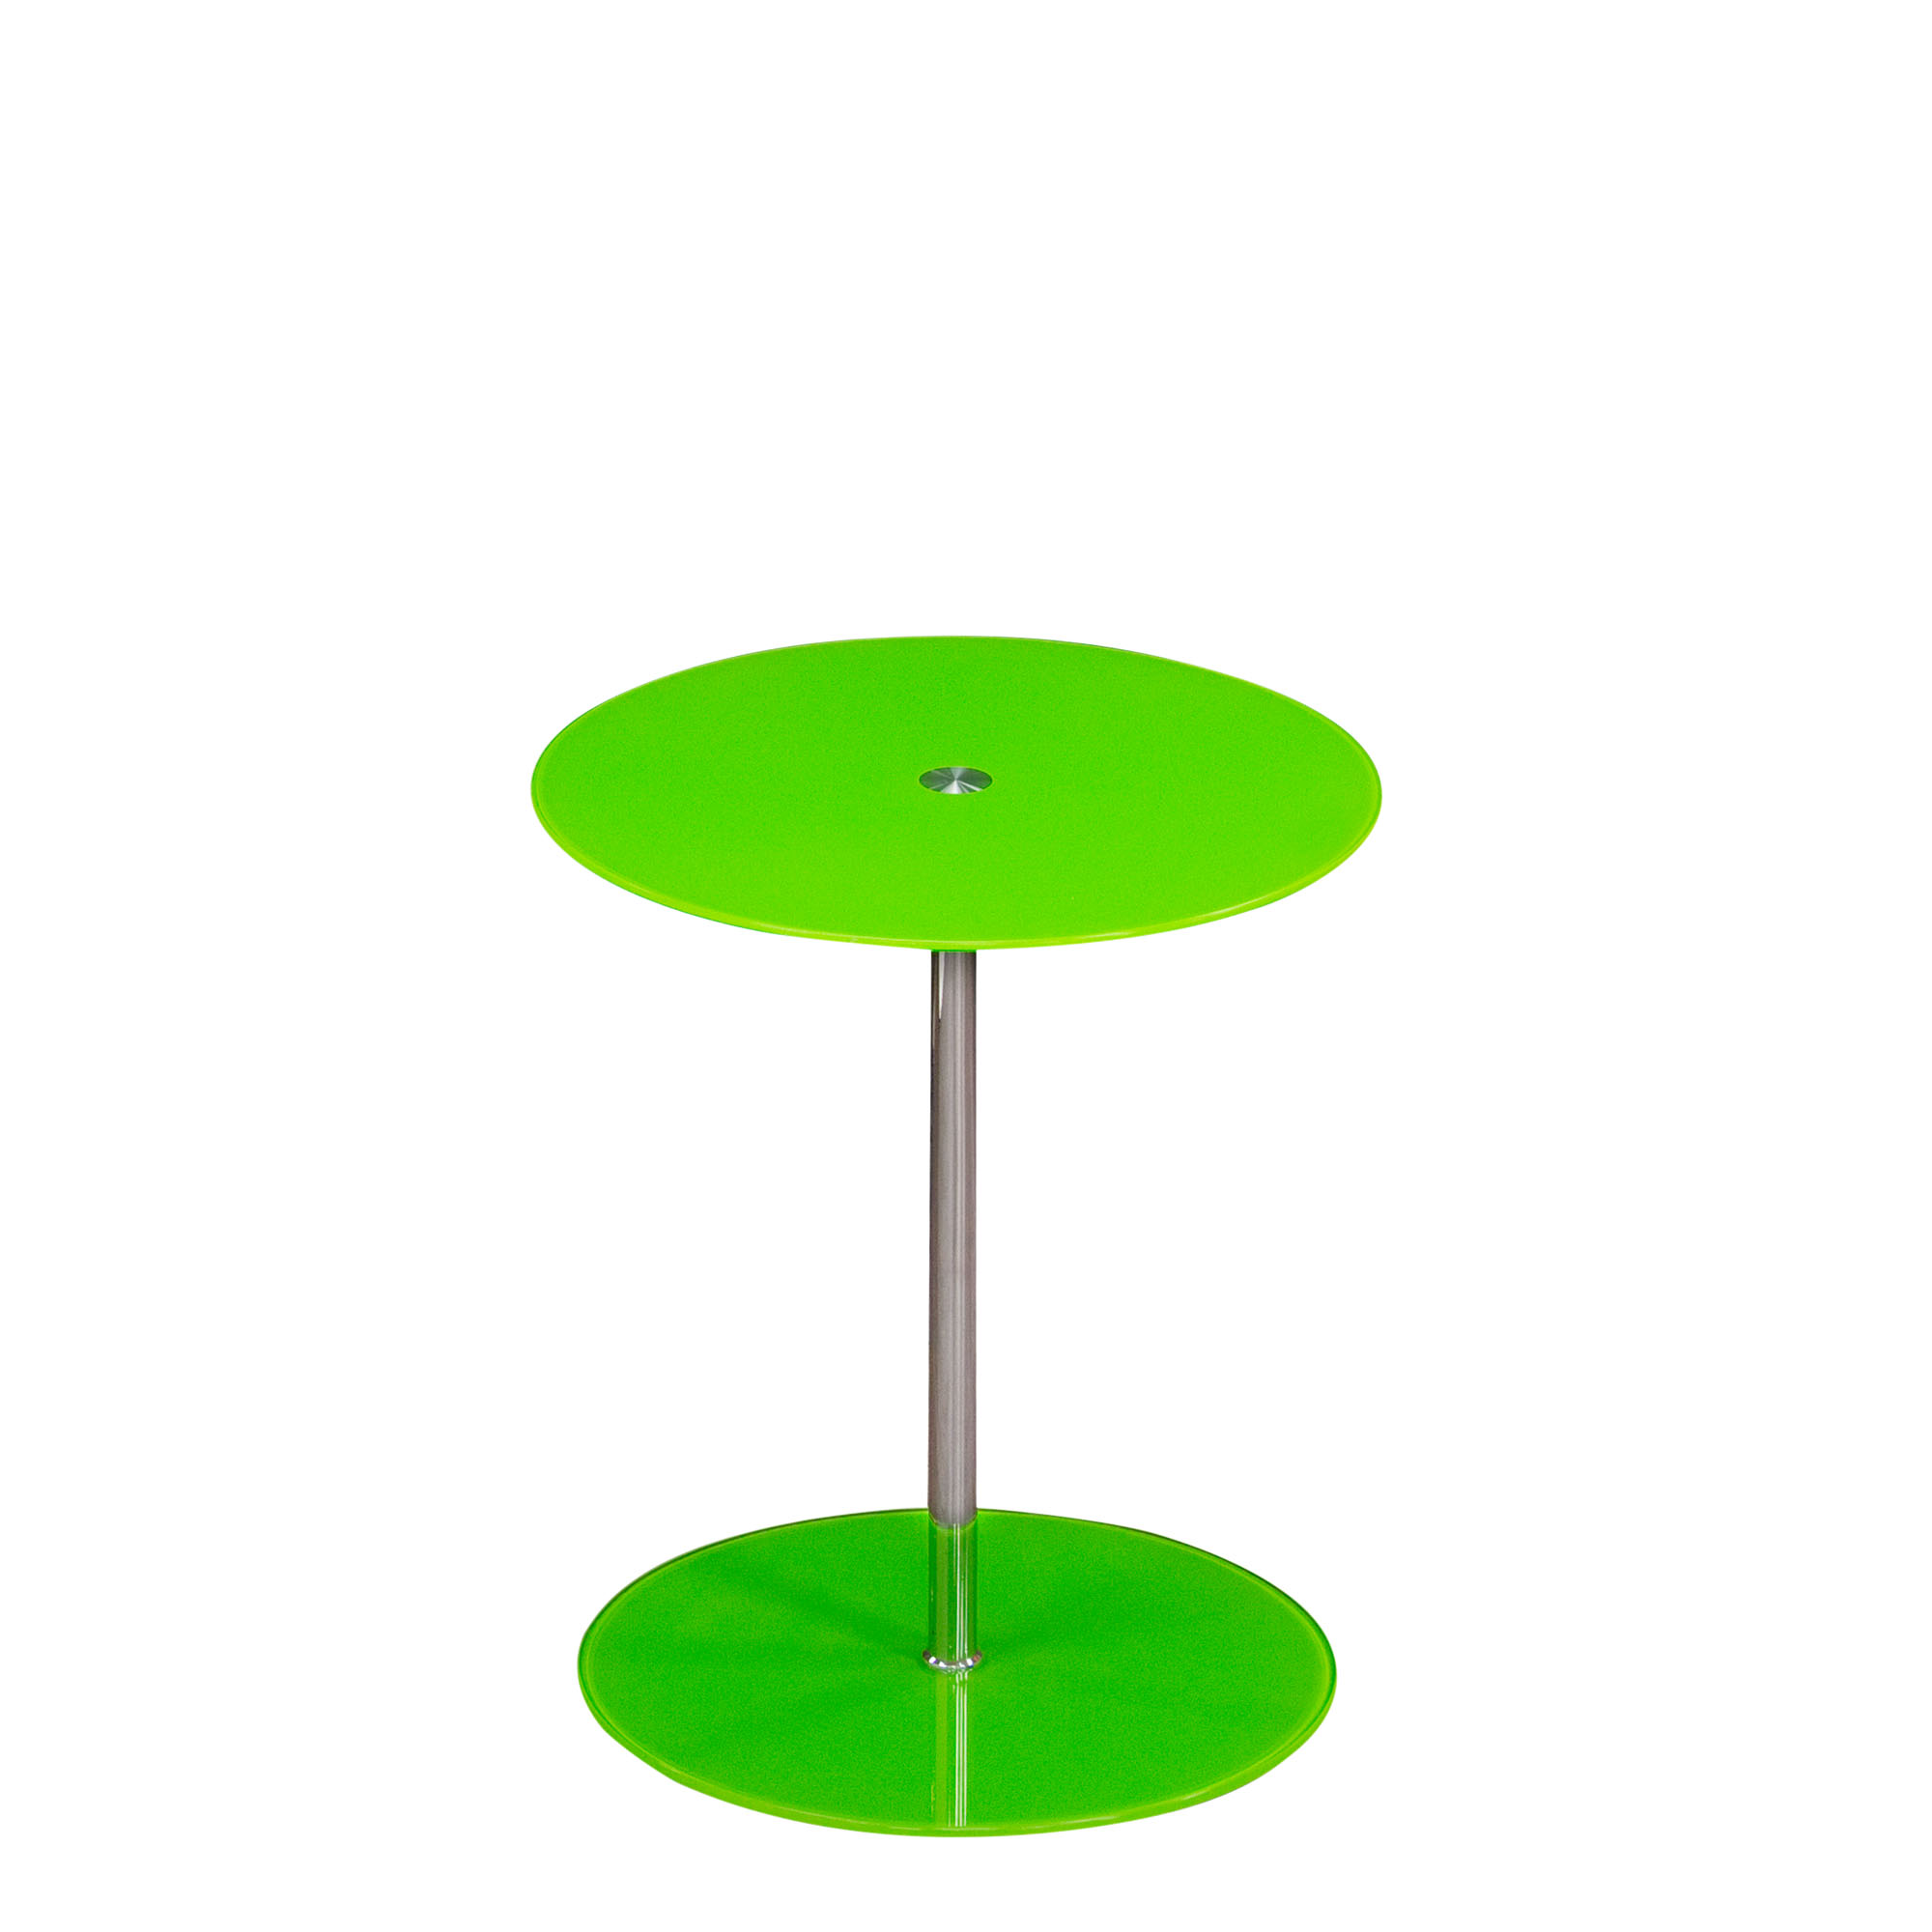 orbit adjustable height glass accent table green big orbitetgn home mirrored foyer mango wood small space furniture solutions magnussen densbury coffee brown metal black outdoor